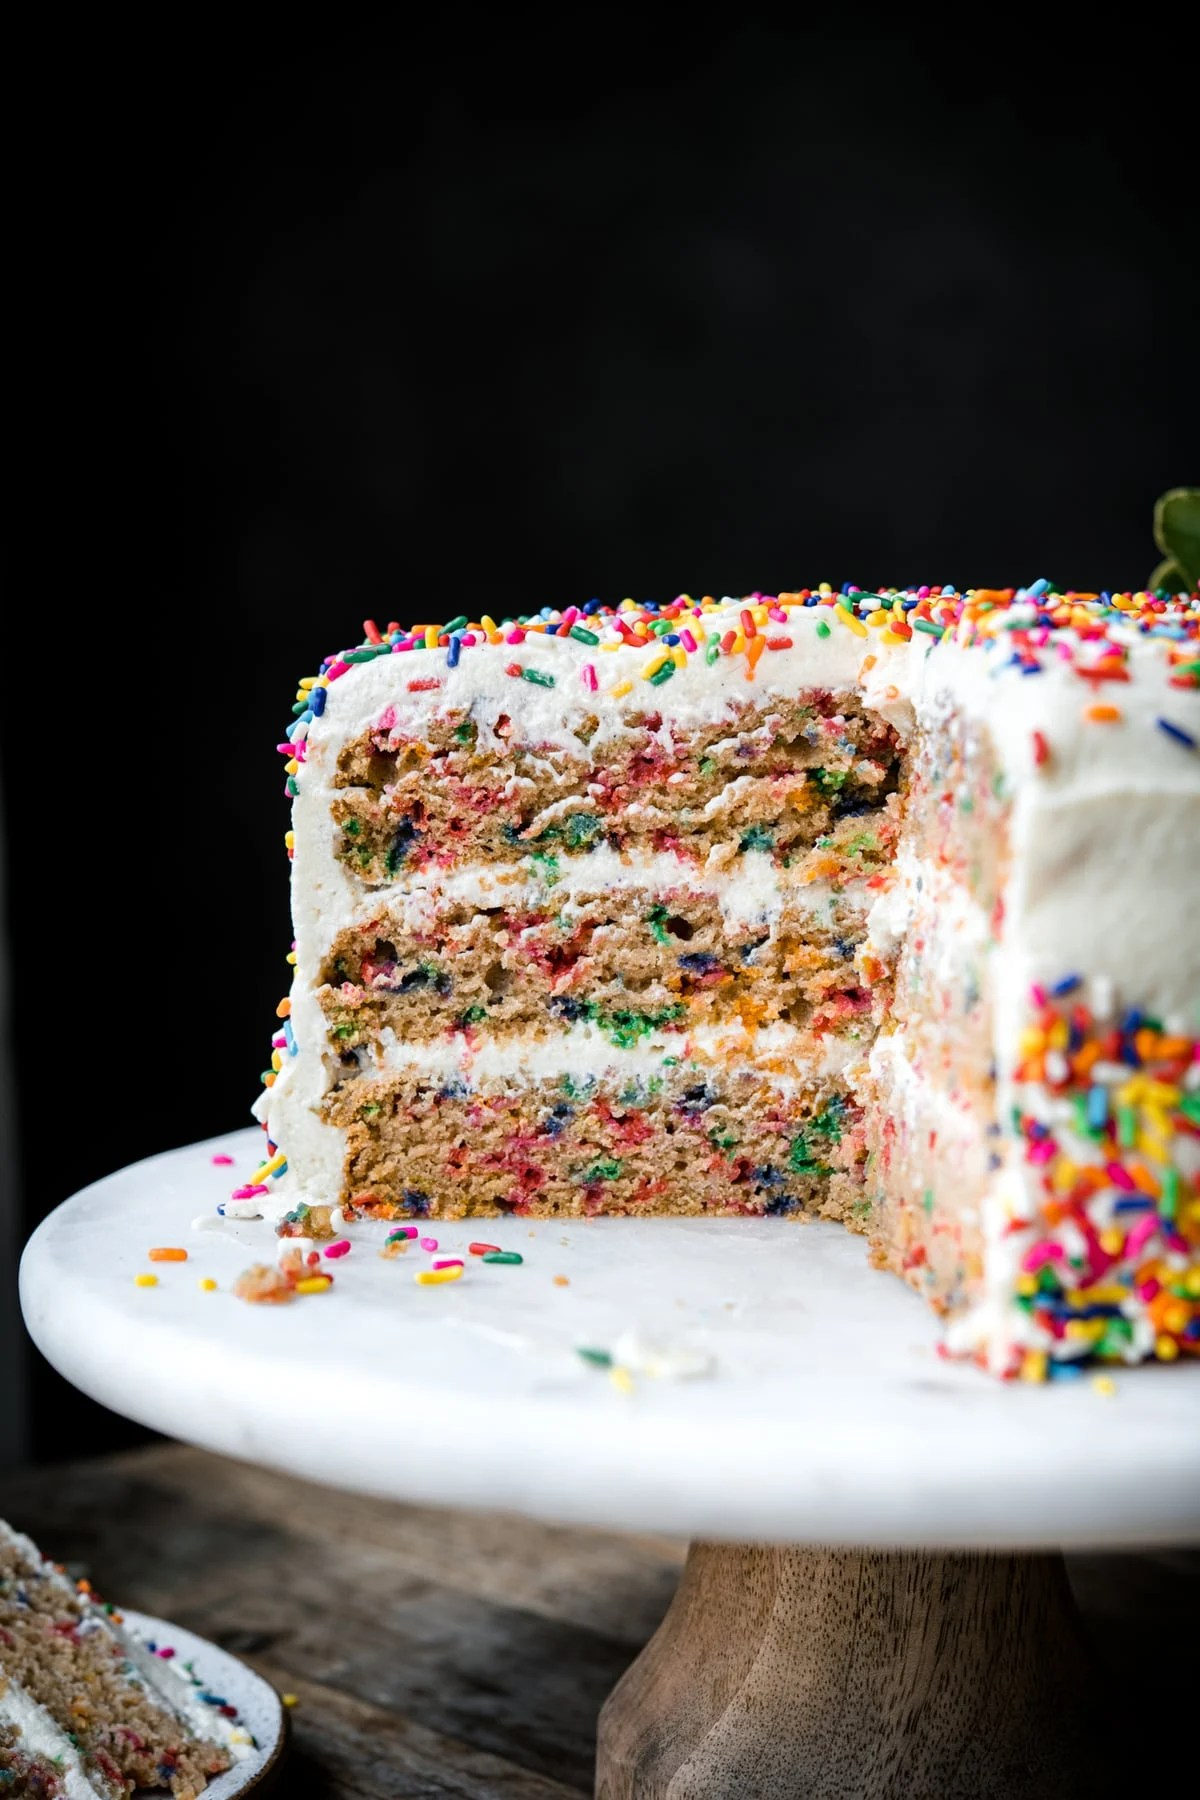 close up side view of slice of vegan gluten free funfetti cake with 3 layers